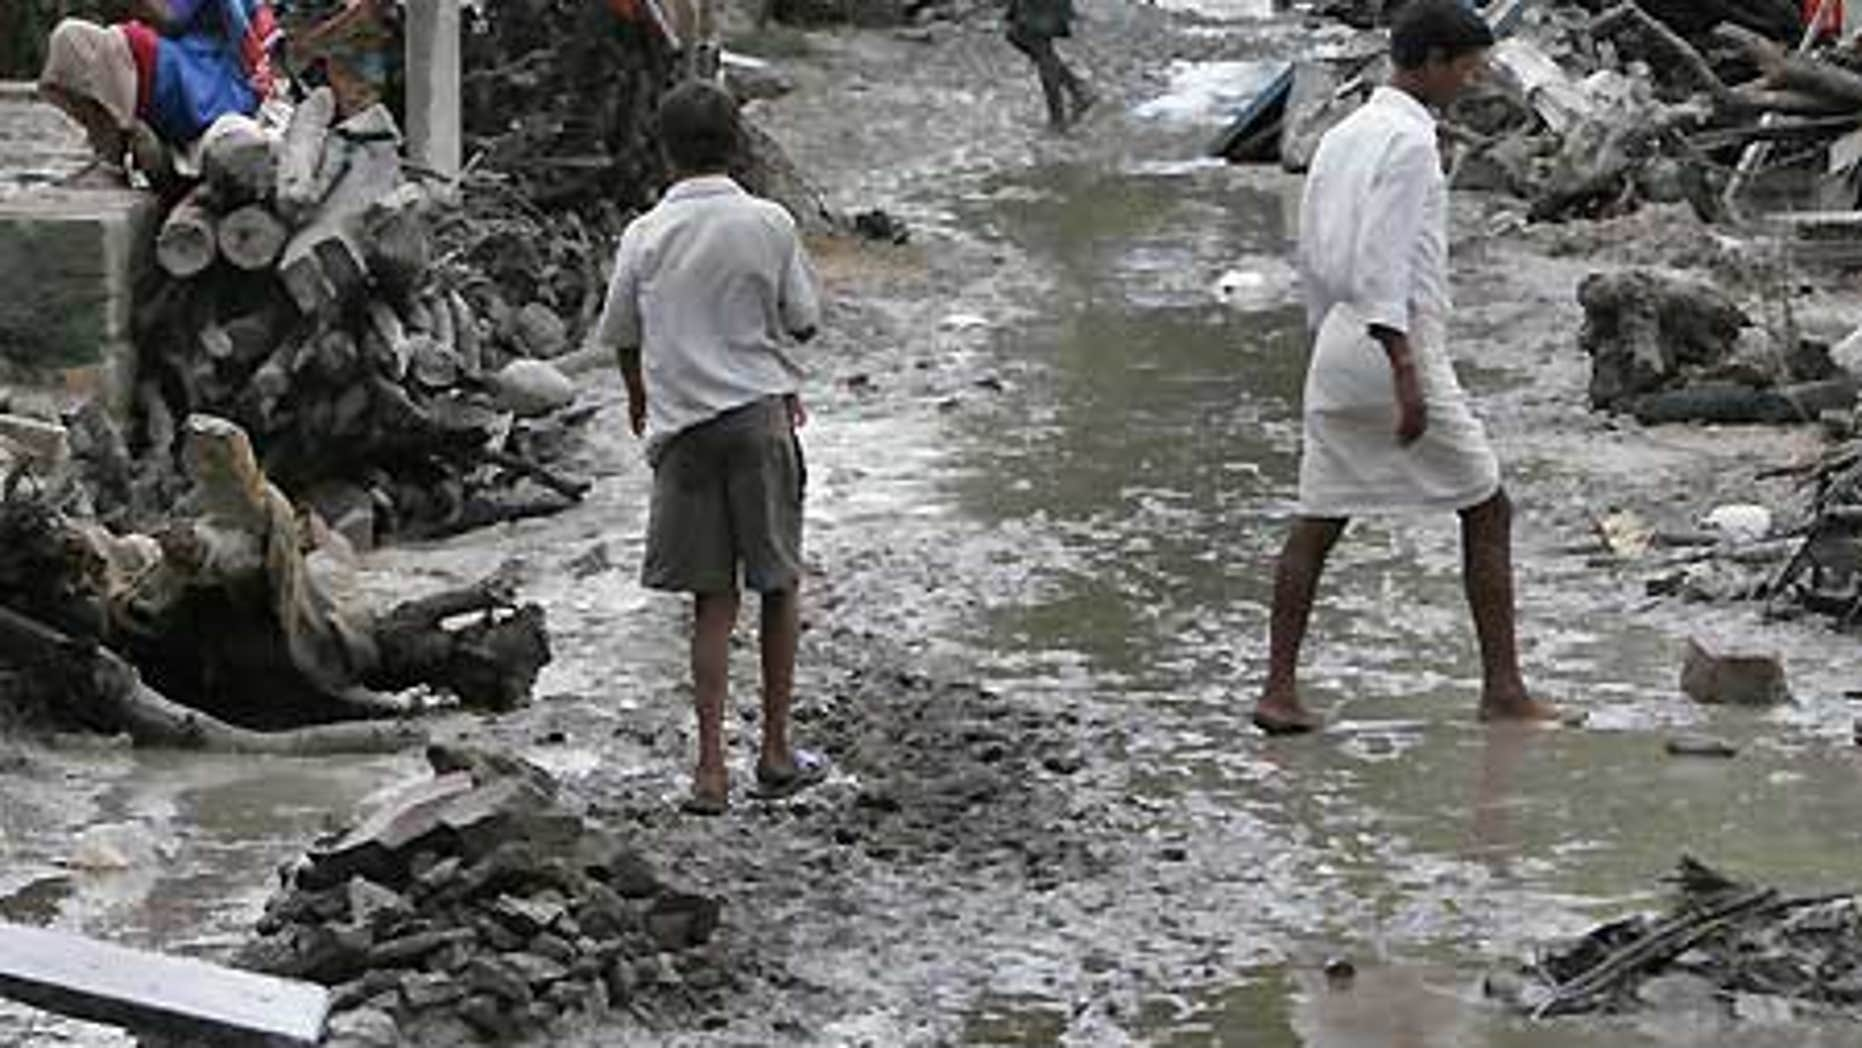 Oct. 3: Villagers walk through a neighborhood badly damaged by floodwaters in Kudadarahal village.